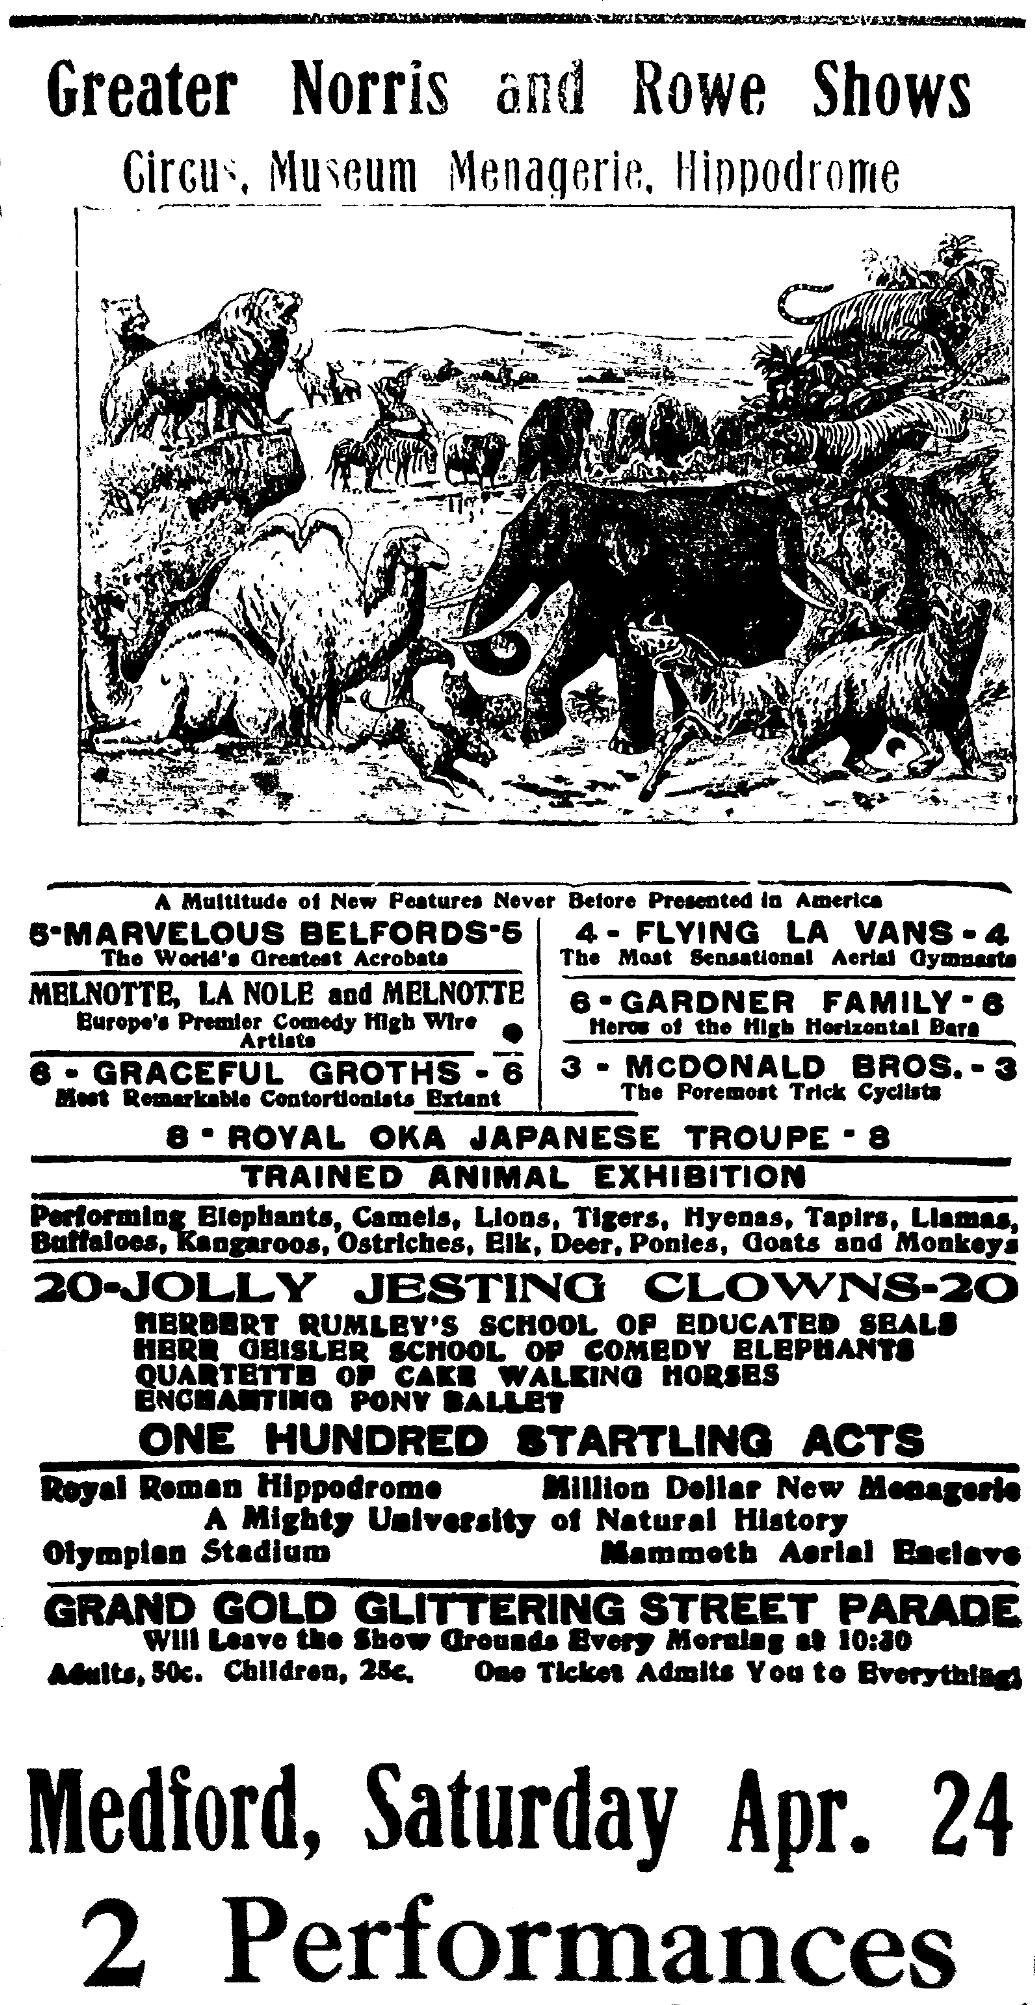 Medford Daily Tribune, April 12, 1909